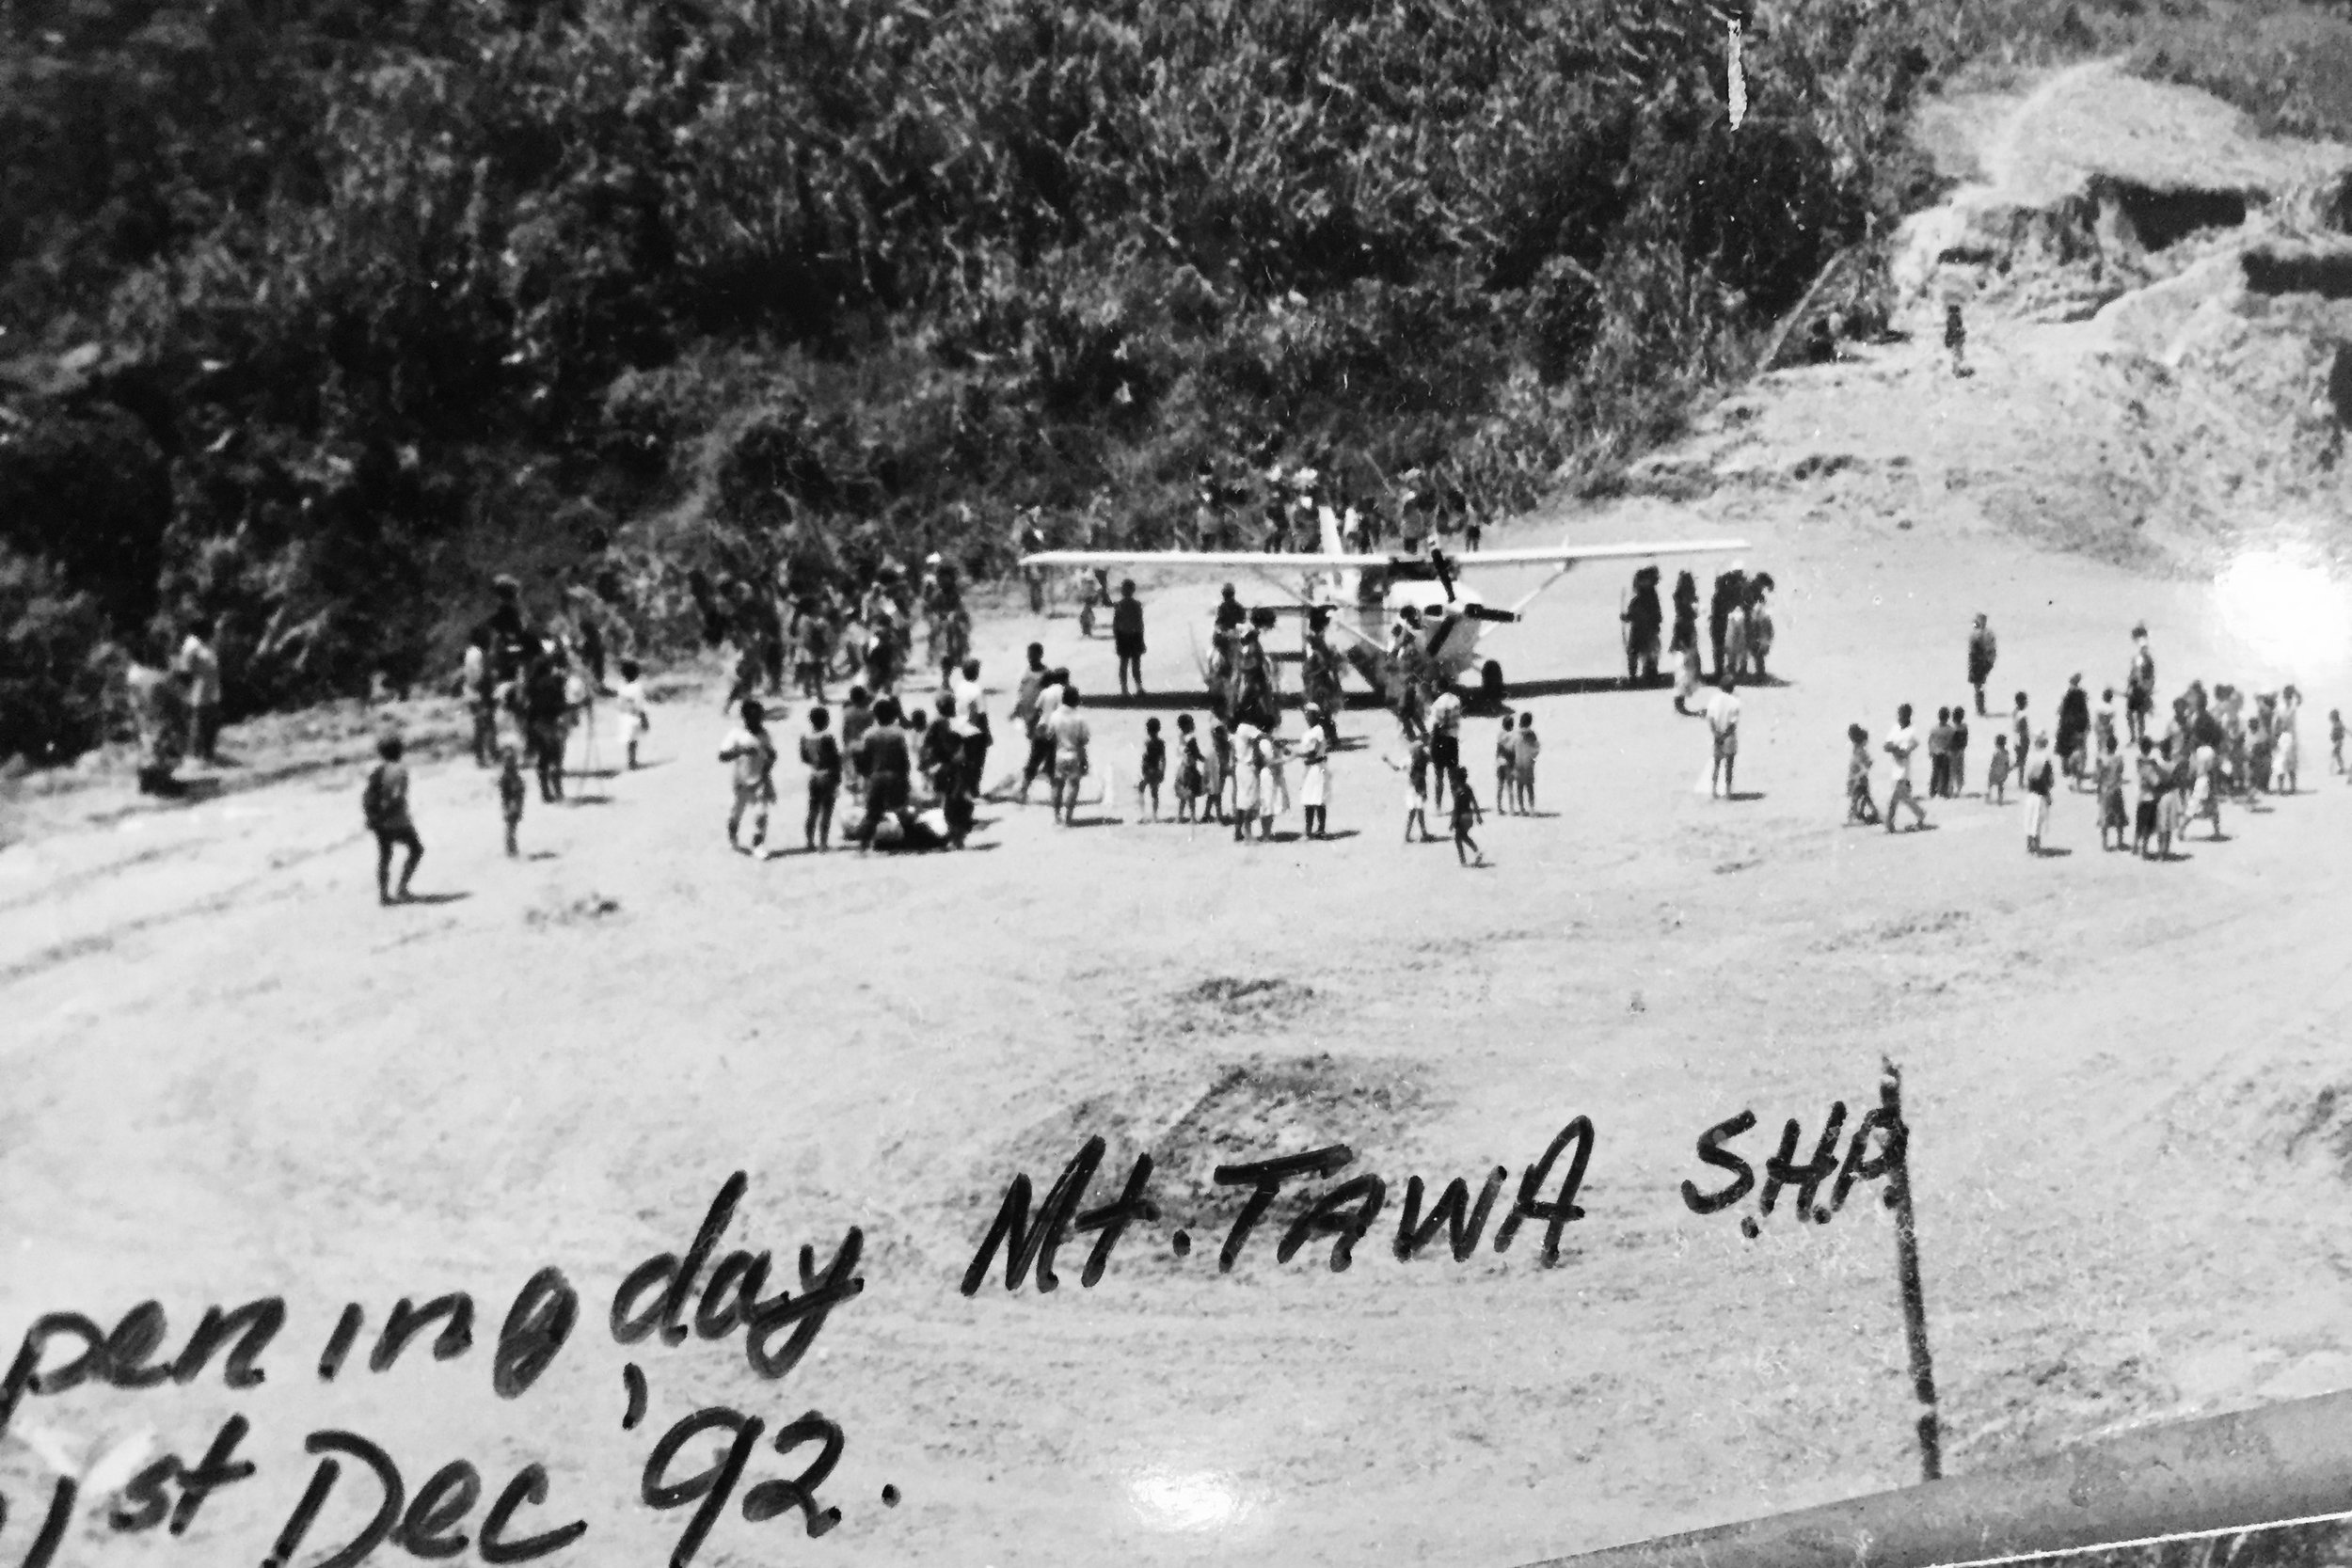 Pictured: The official opening of the Mt Tawa airstrip in the Southern Highlands of PNG. With a successful landing of a Cessna 206 to celebrate with the remote tribal group.